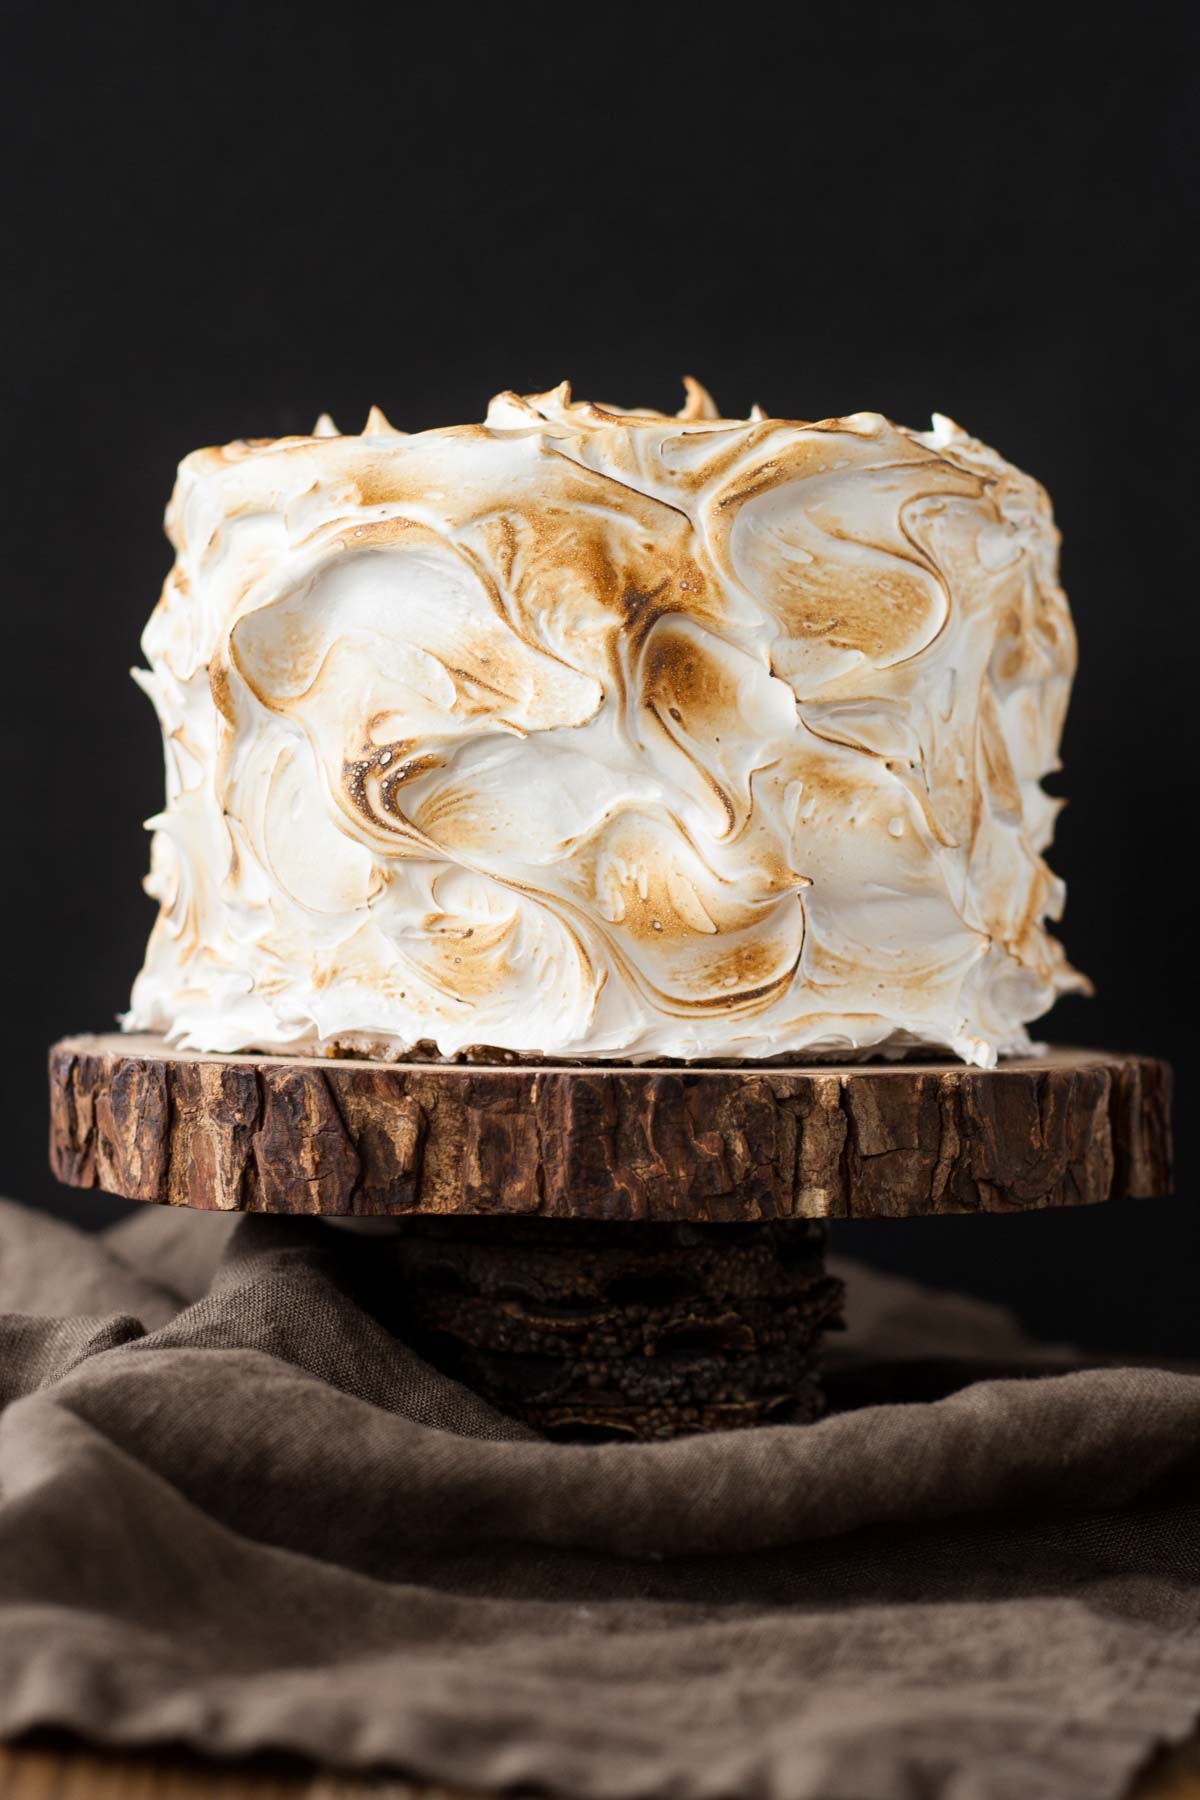 smores_cake-6 | A list of the best 25 s'more recipes for summer. Smores dip, cookies, pie, brownies, and other ideas for tasty different ways to make that campfire dessert.